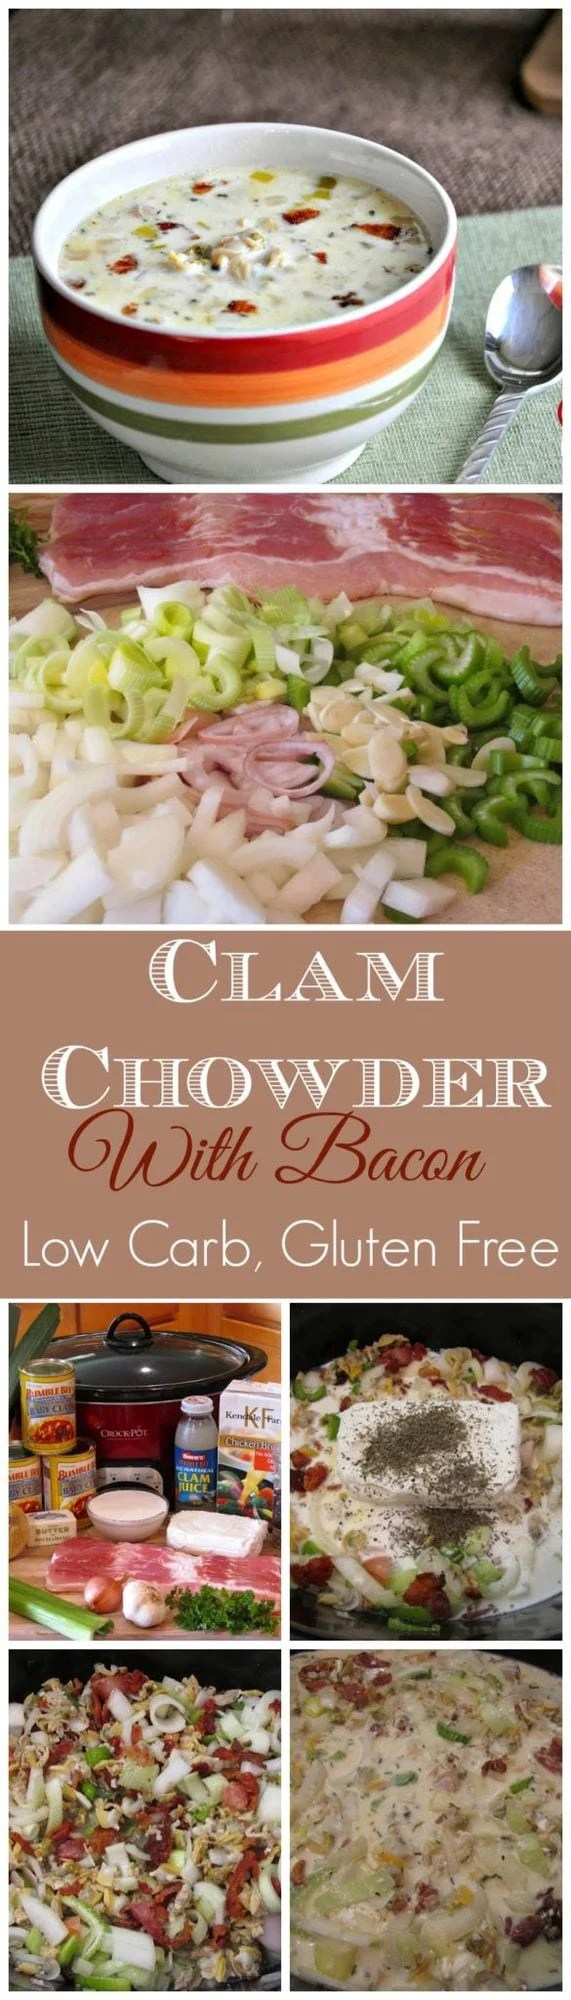 Slow Cooker Clam Chowder with Bacon - Low Carb, Gluten Free | Peace Love and Low Carb